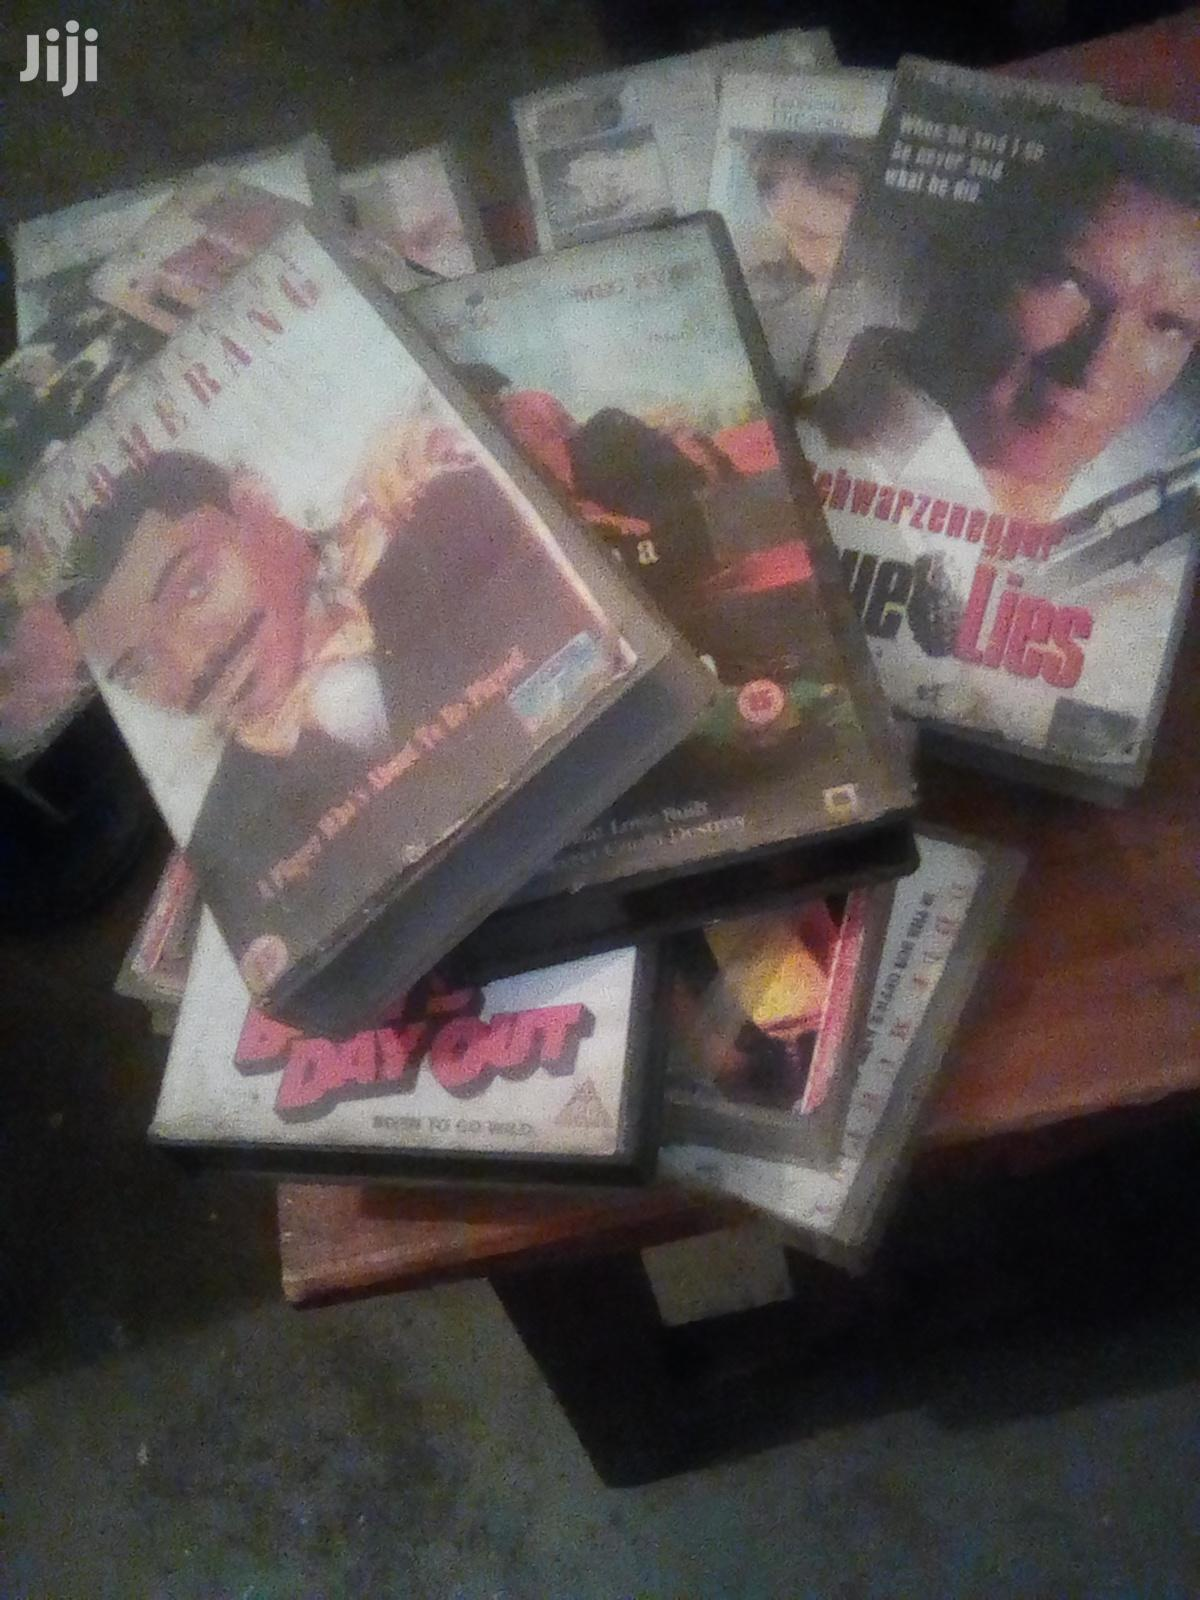 Vcr Tapes And Movie Sets From The 90s | CDs & DVDs for sale in Nairobi Central, Nairobi, Kenya